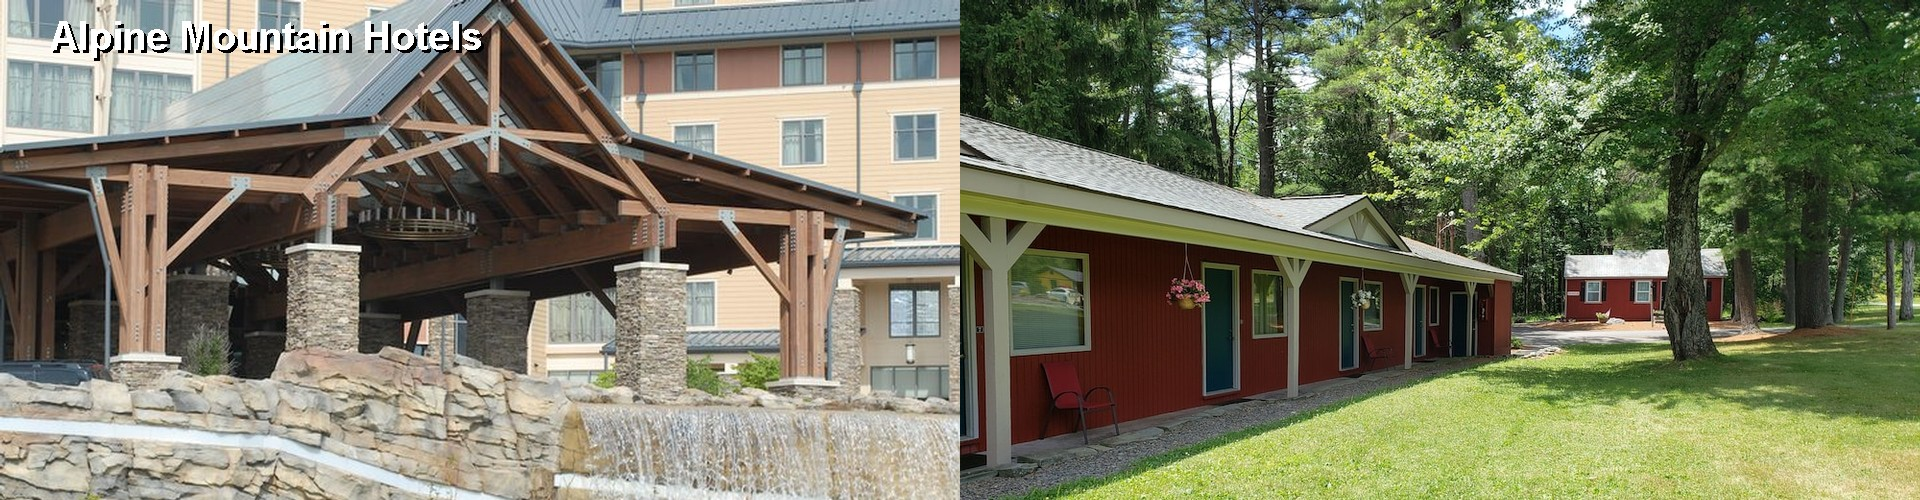 5 Best Hotels near Alpine Mountain